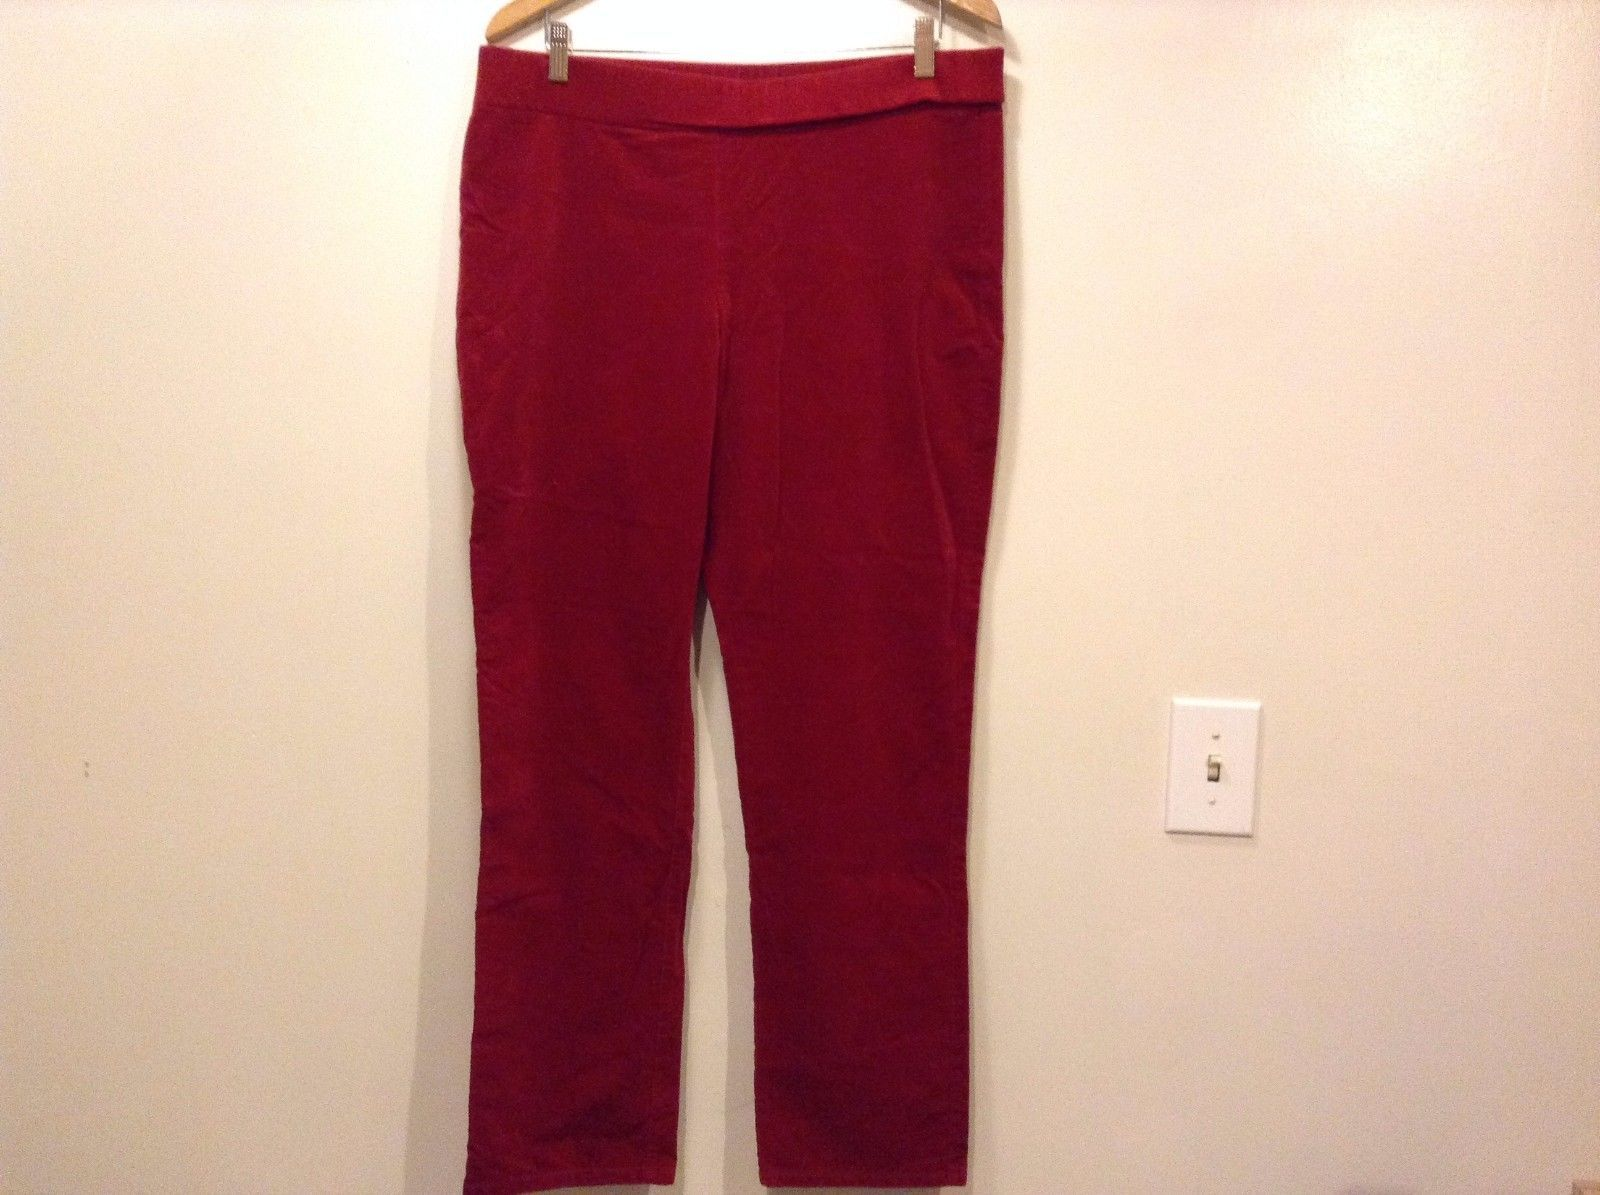 Great Condition Rafaella Size 16 Cotton Blend Elastic Waist Red